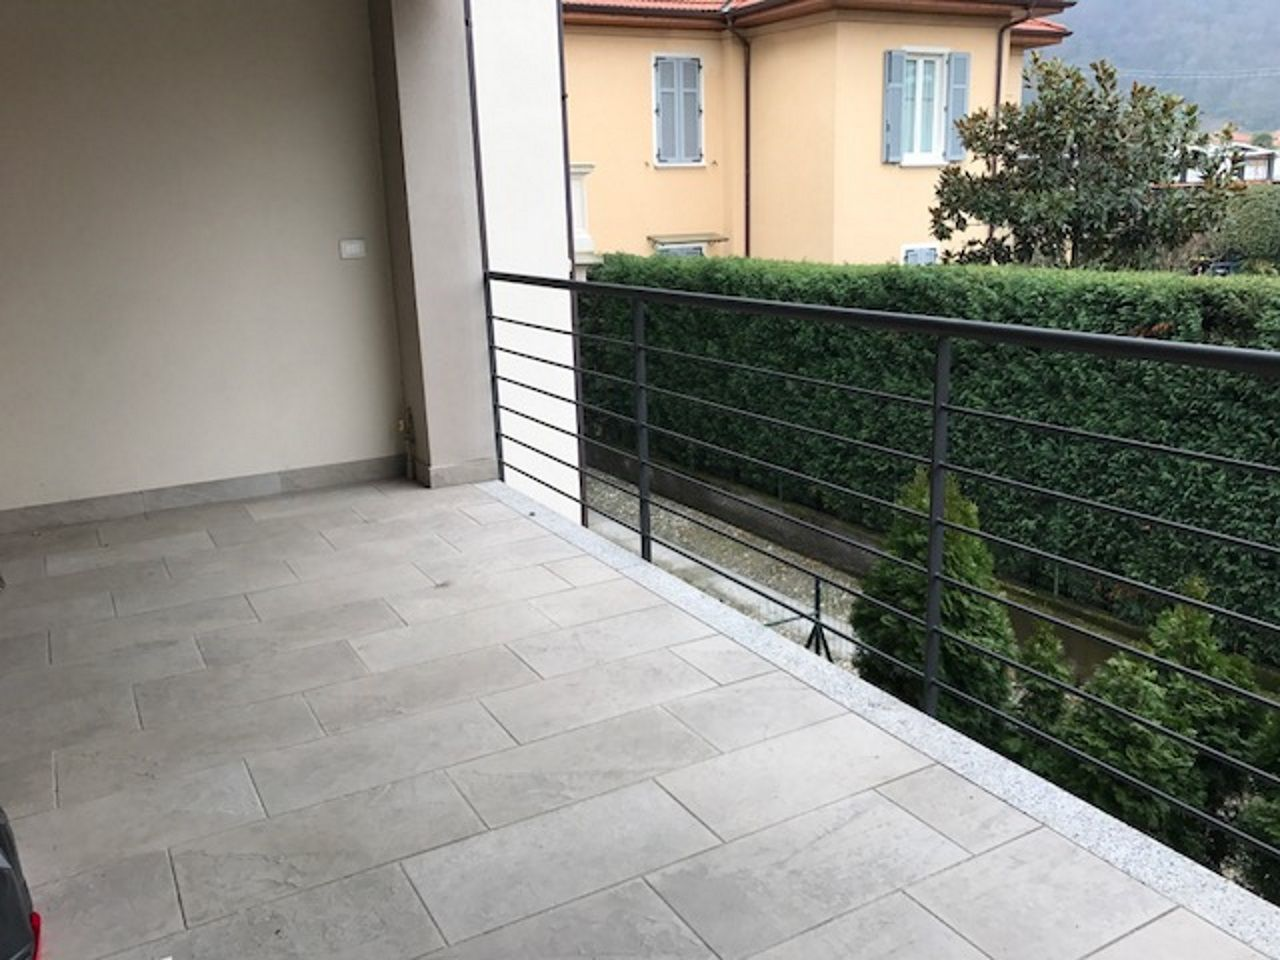 Apartment In Verbania Intra Center With Garage Aa2839